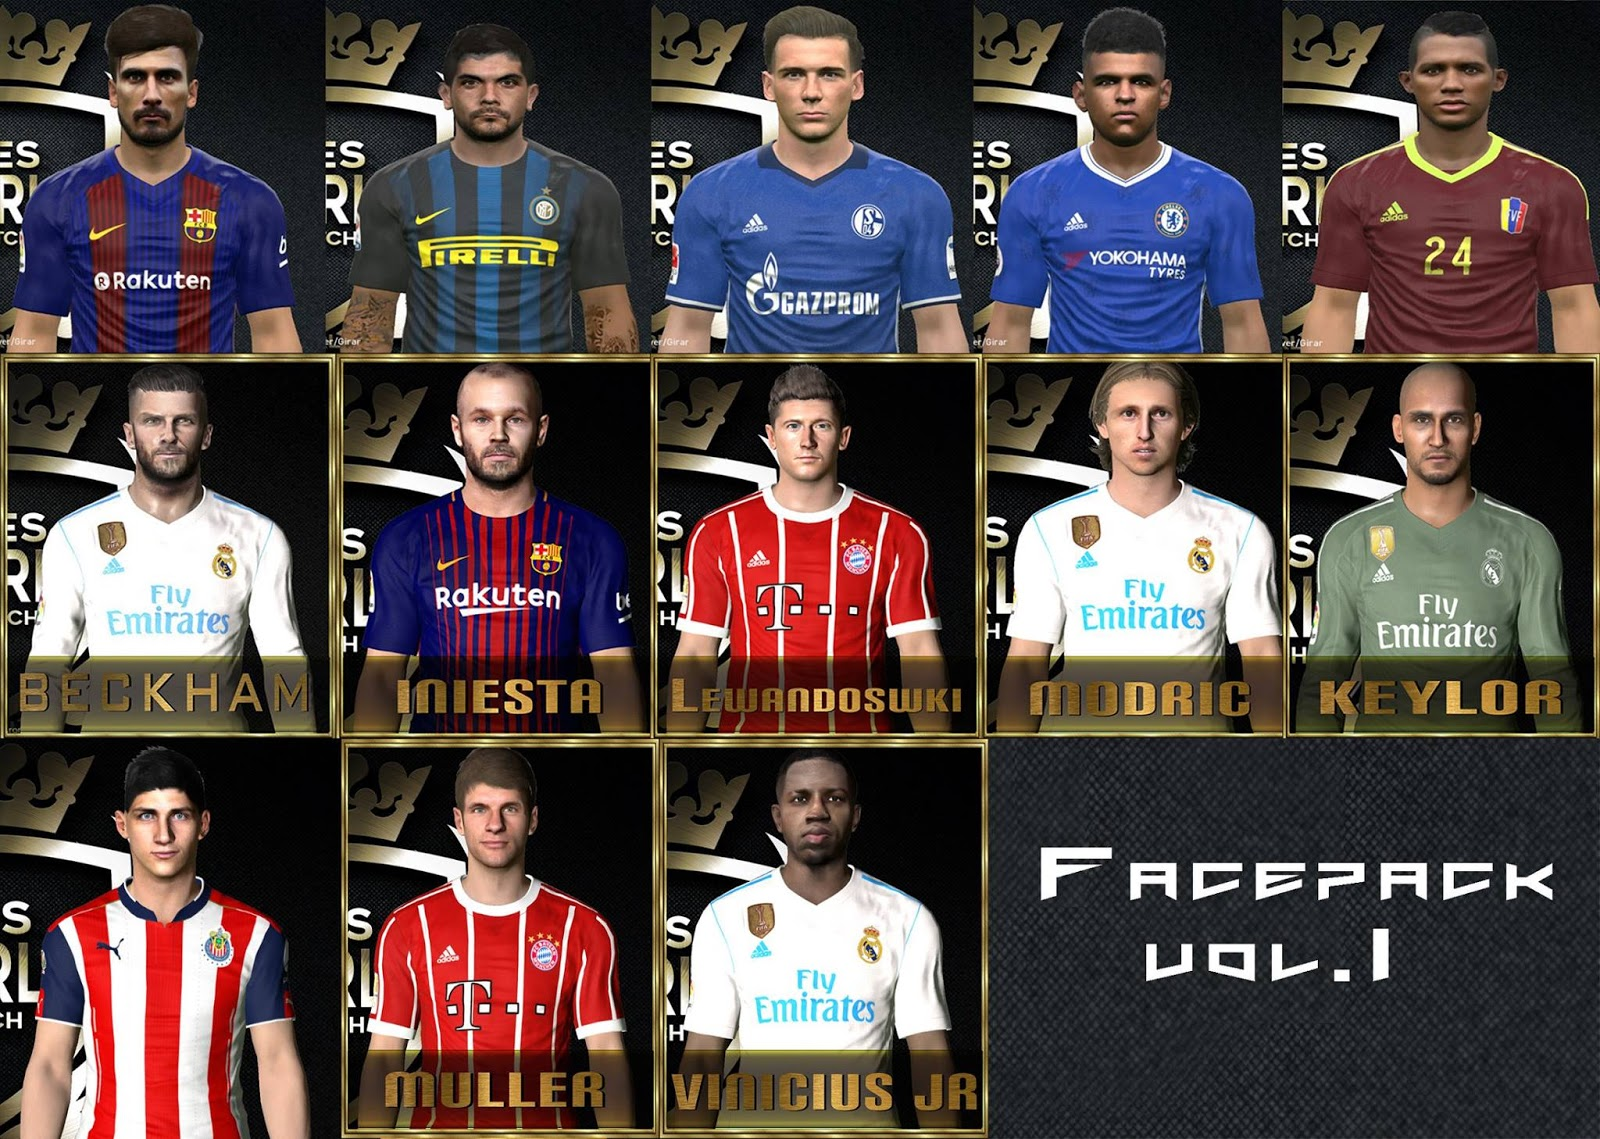 PES 2017 Facepack Vol. 1 by Robert Facemaker